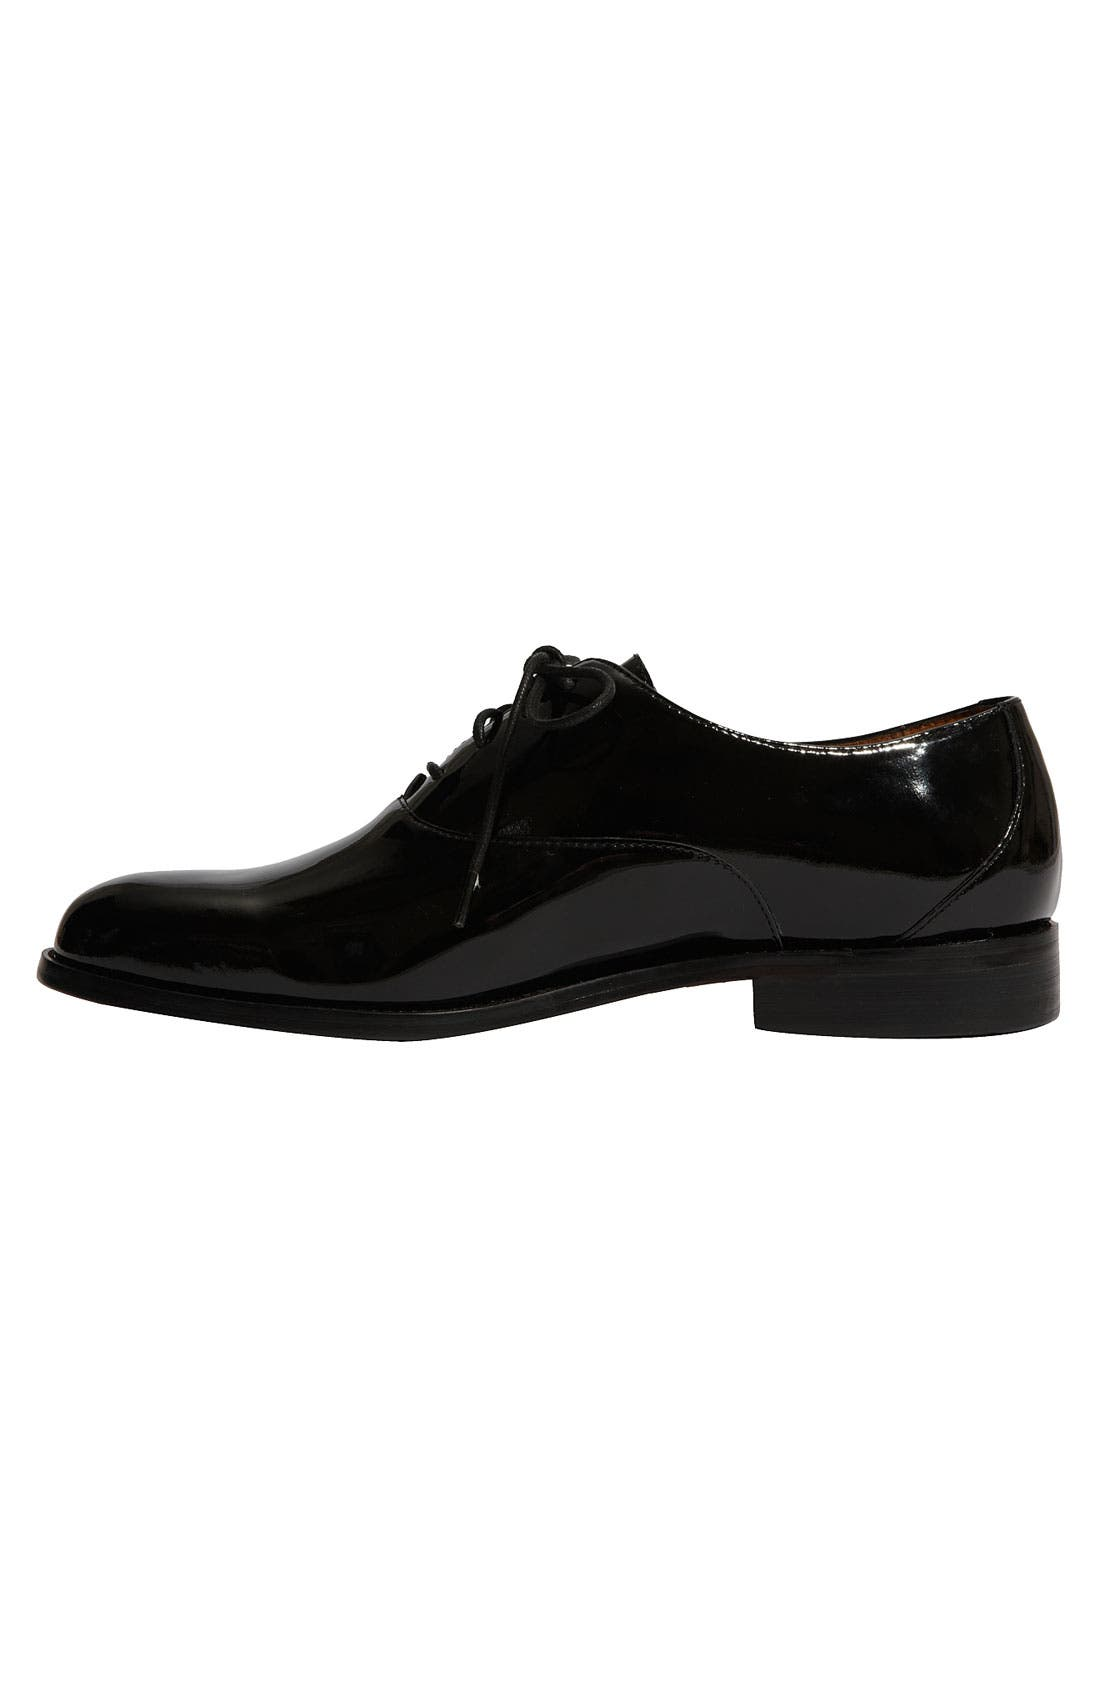 Alternate Image 2  - Florsheim 'Kingston' Patent Leather Oxford (Men)